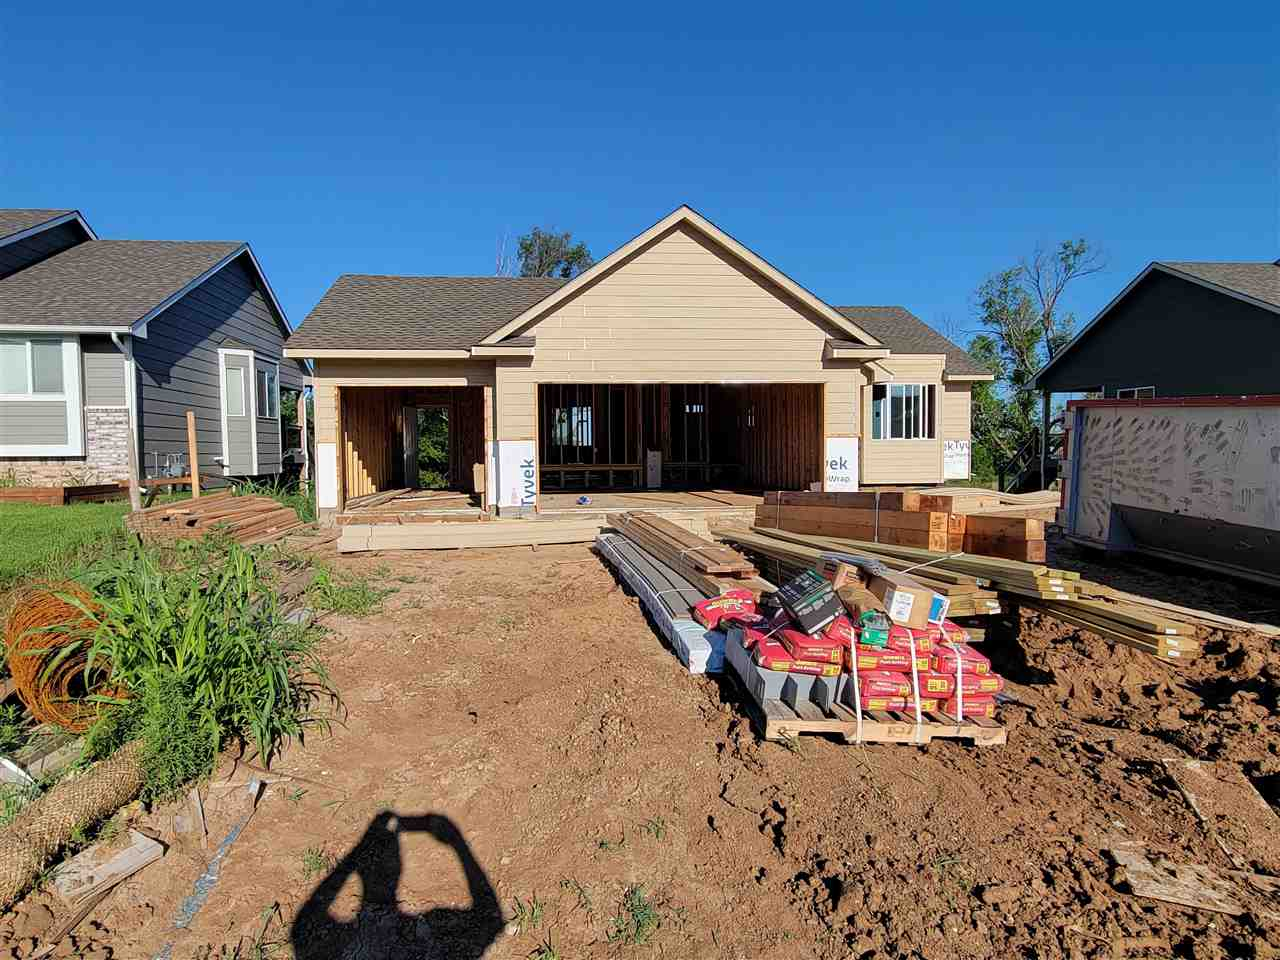 New build with nice upgrades. Granite counter tops. Electric modern looking fireplace, upgraded HVAC system and tankless hot water heater. Basement includes view out windows. Enjoy evenings on covered deck and view of open fields with no neighbors in view just beautiful nature.